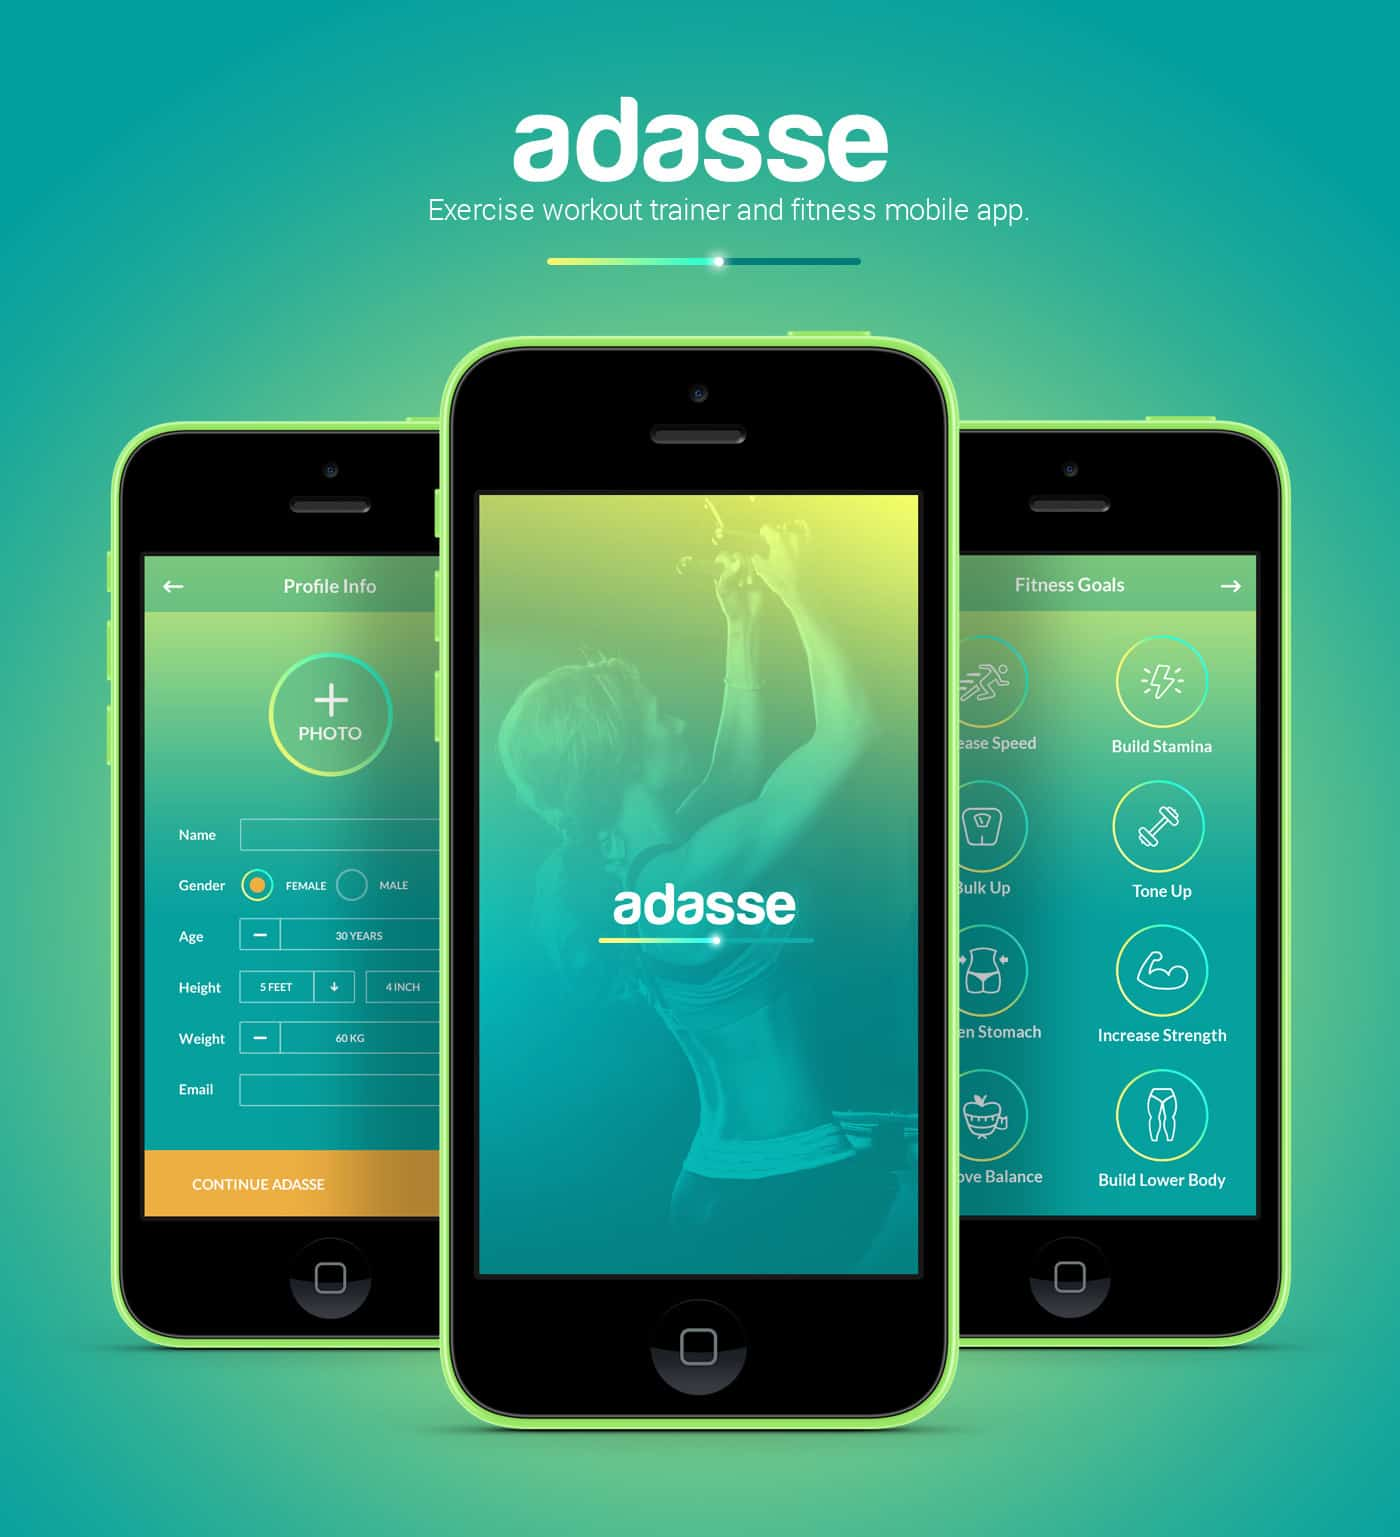 adasse gym workout mobile app by naresh kumar design ideas. Black Bedroom Furniture Sets. Home Design Ideas